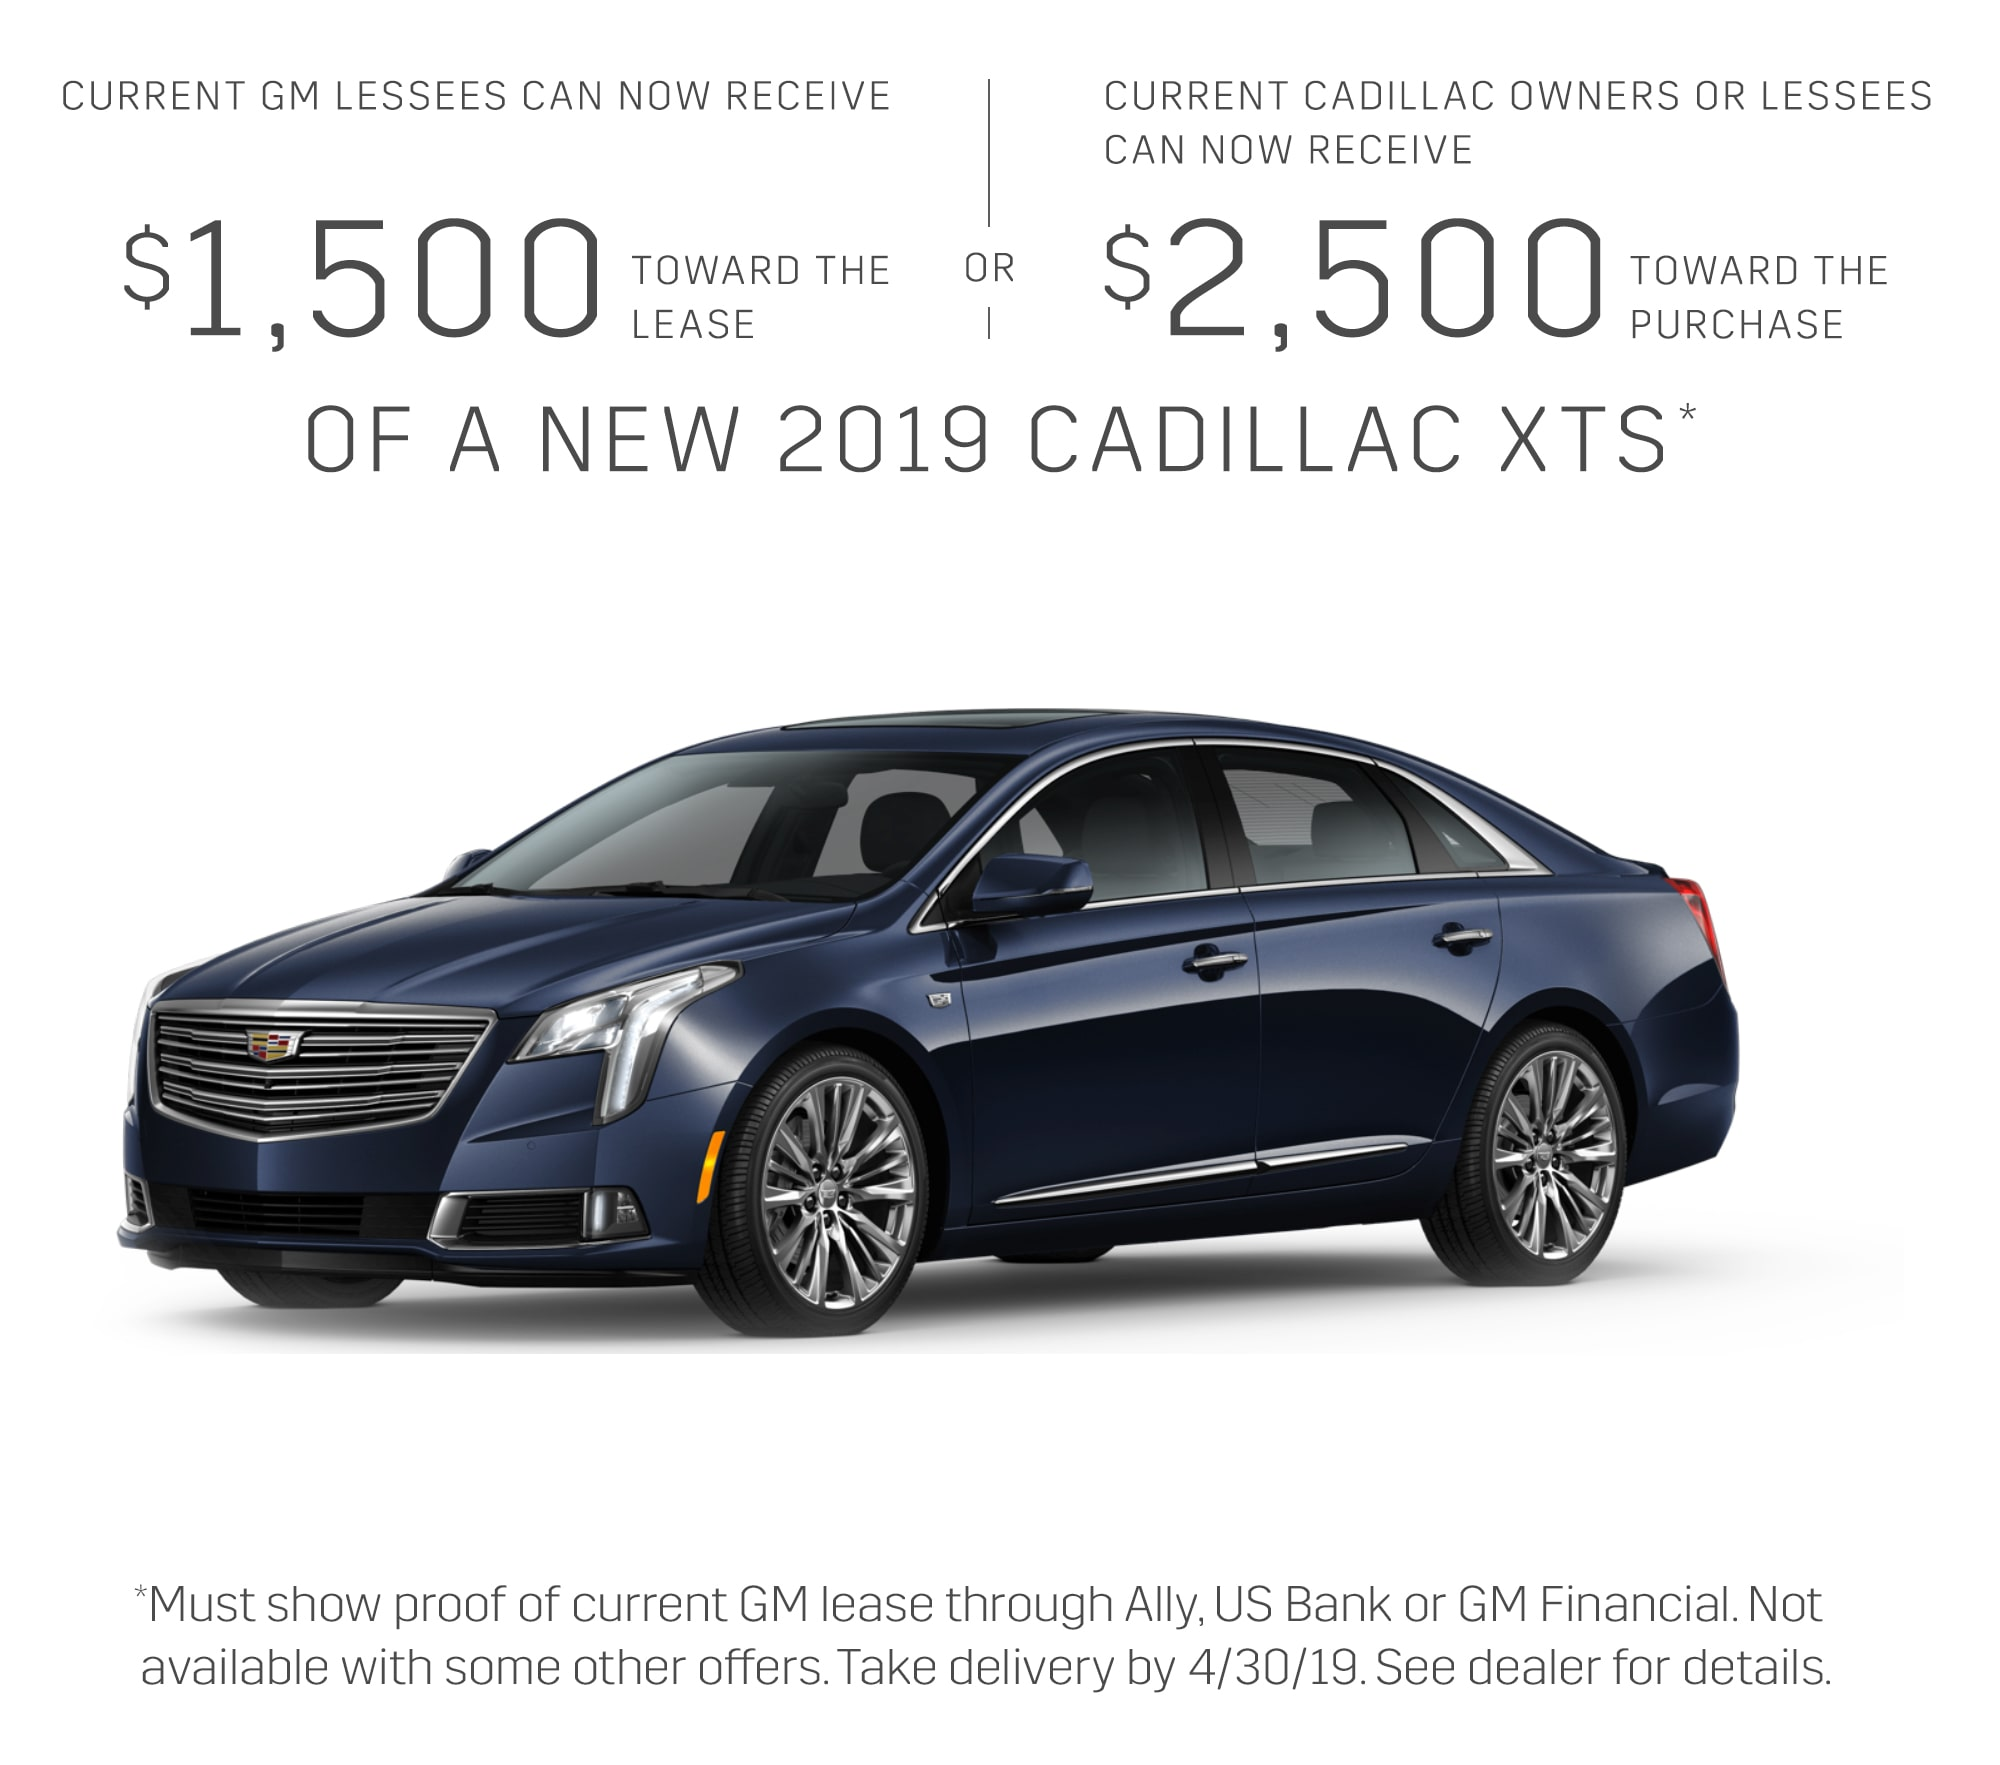 2019 Cadillac Xts: Current Offers & Special Deals